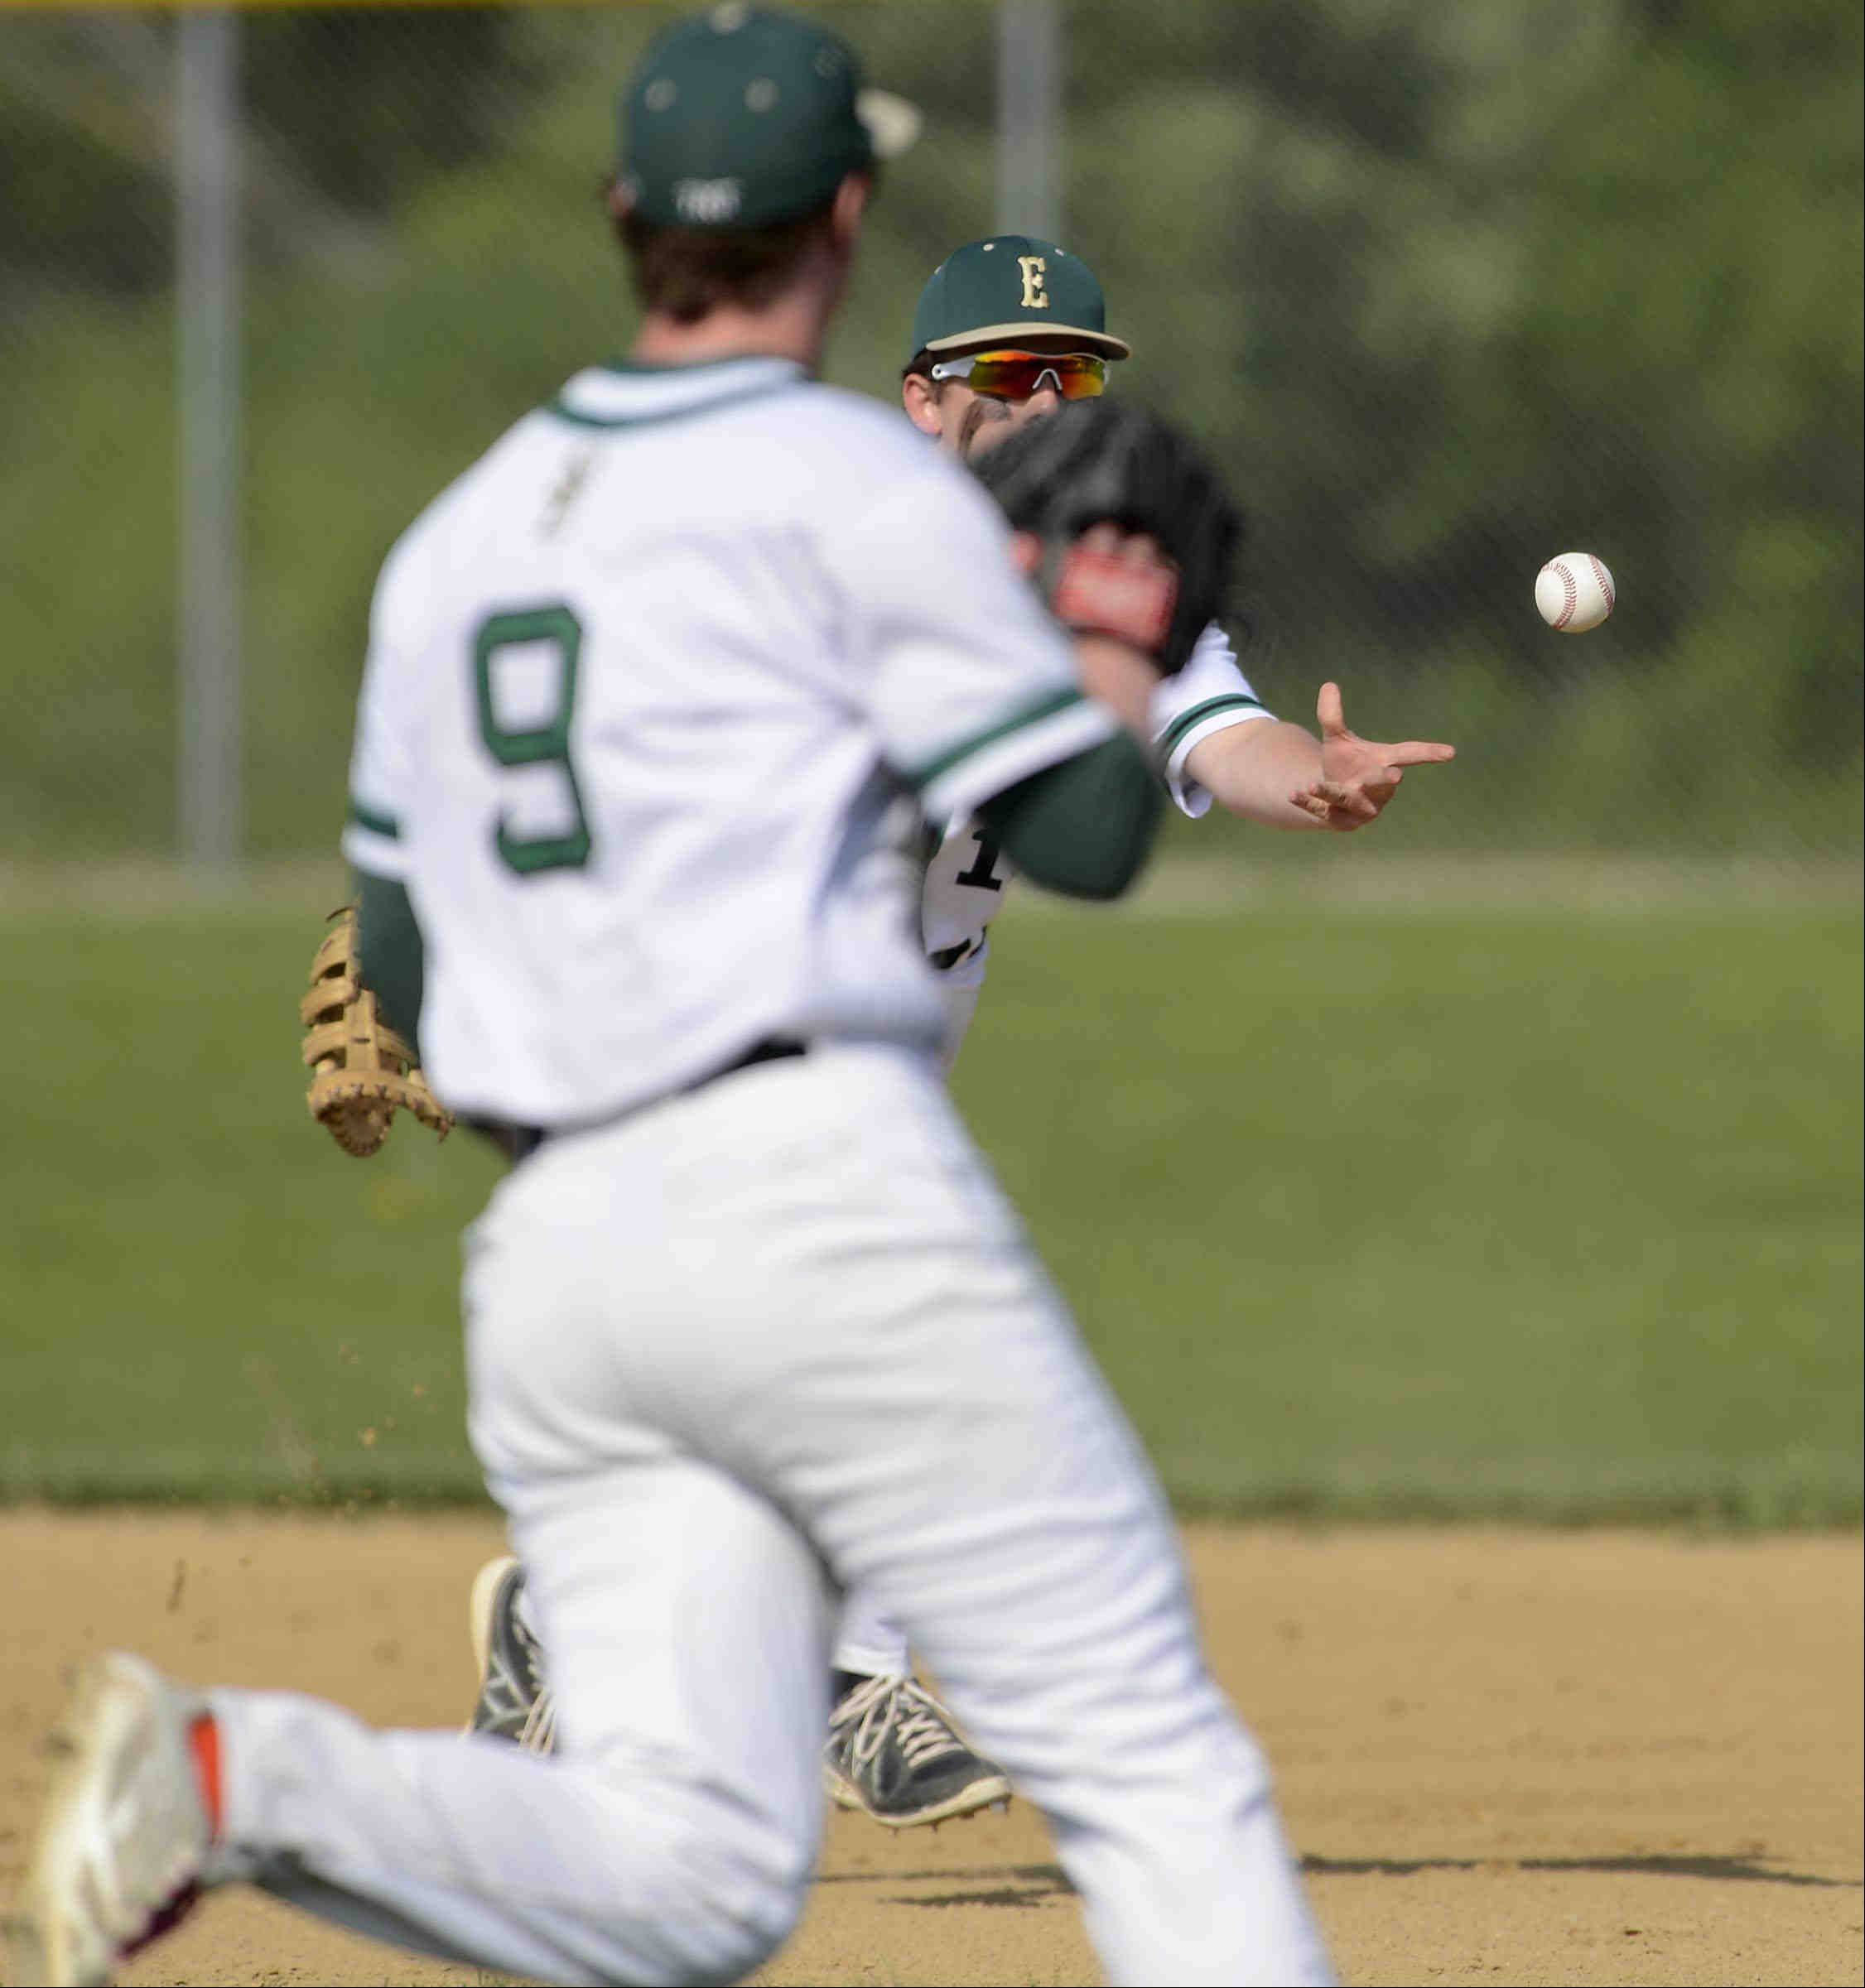 St. Edward's first baseman Jake Lafrenz tosses the ball to pitcher Jacob Koehring as he covers first base to force out Aurora Christian's J.T. Baksha in the second inning Thursday in the 2A Regional game in Elgin.